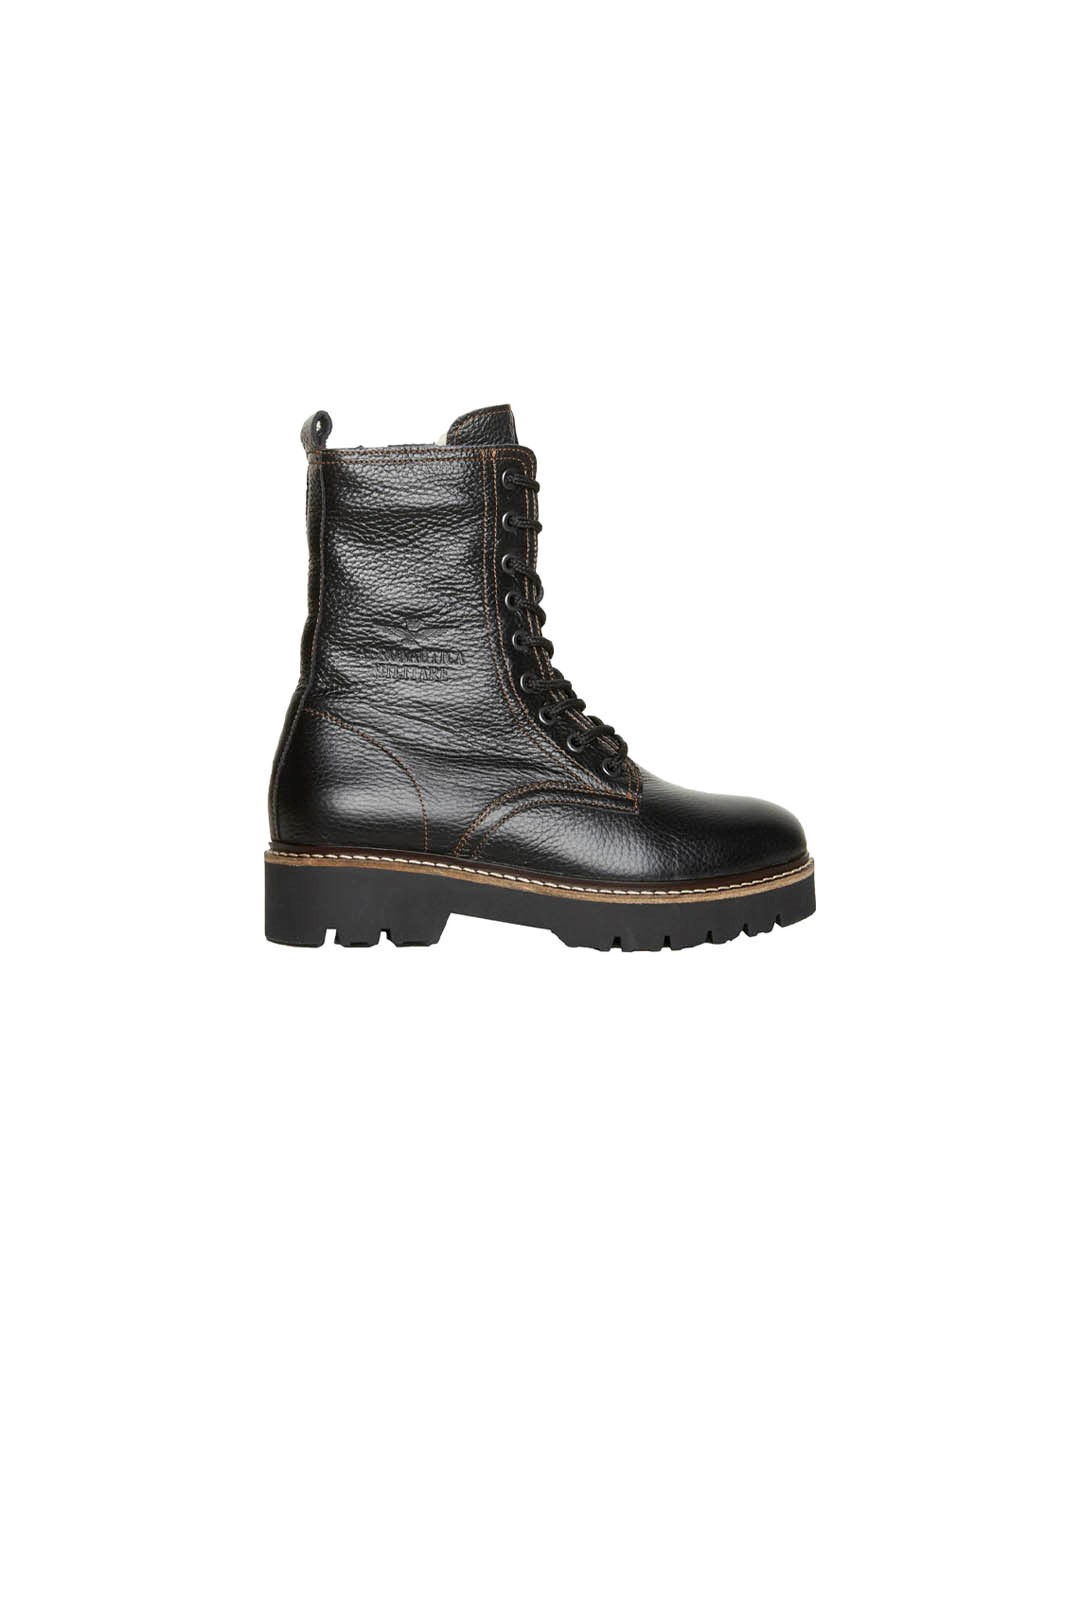 Leather Combat boots lined in pure wool  2